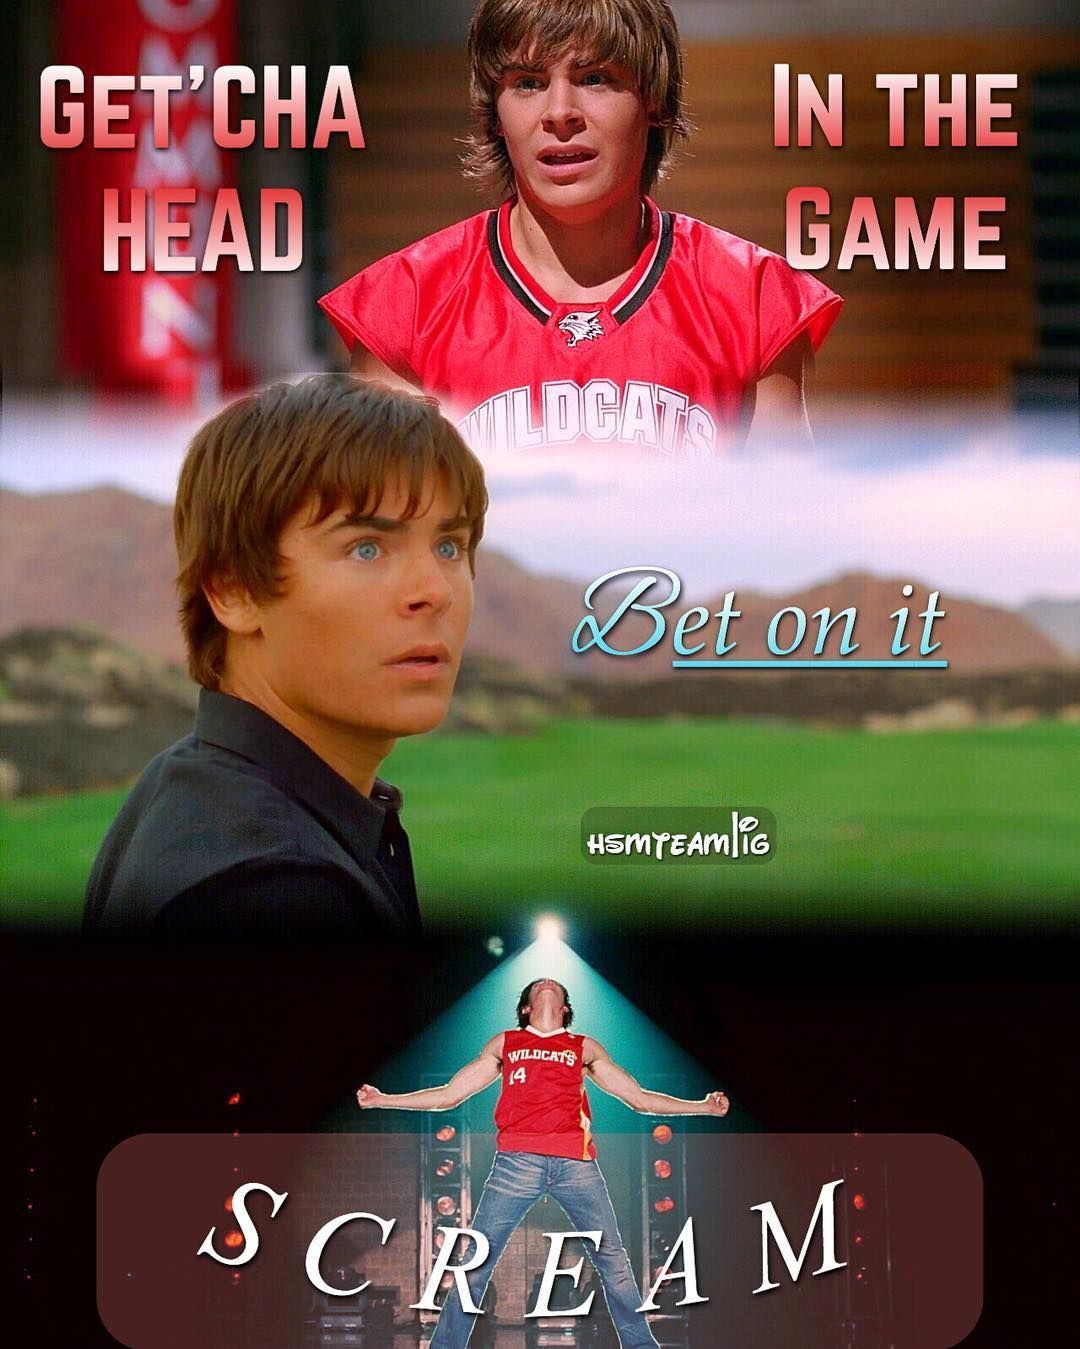 High school musical 3 song bet on it play games to earn bitcoins for free